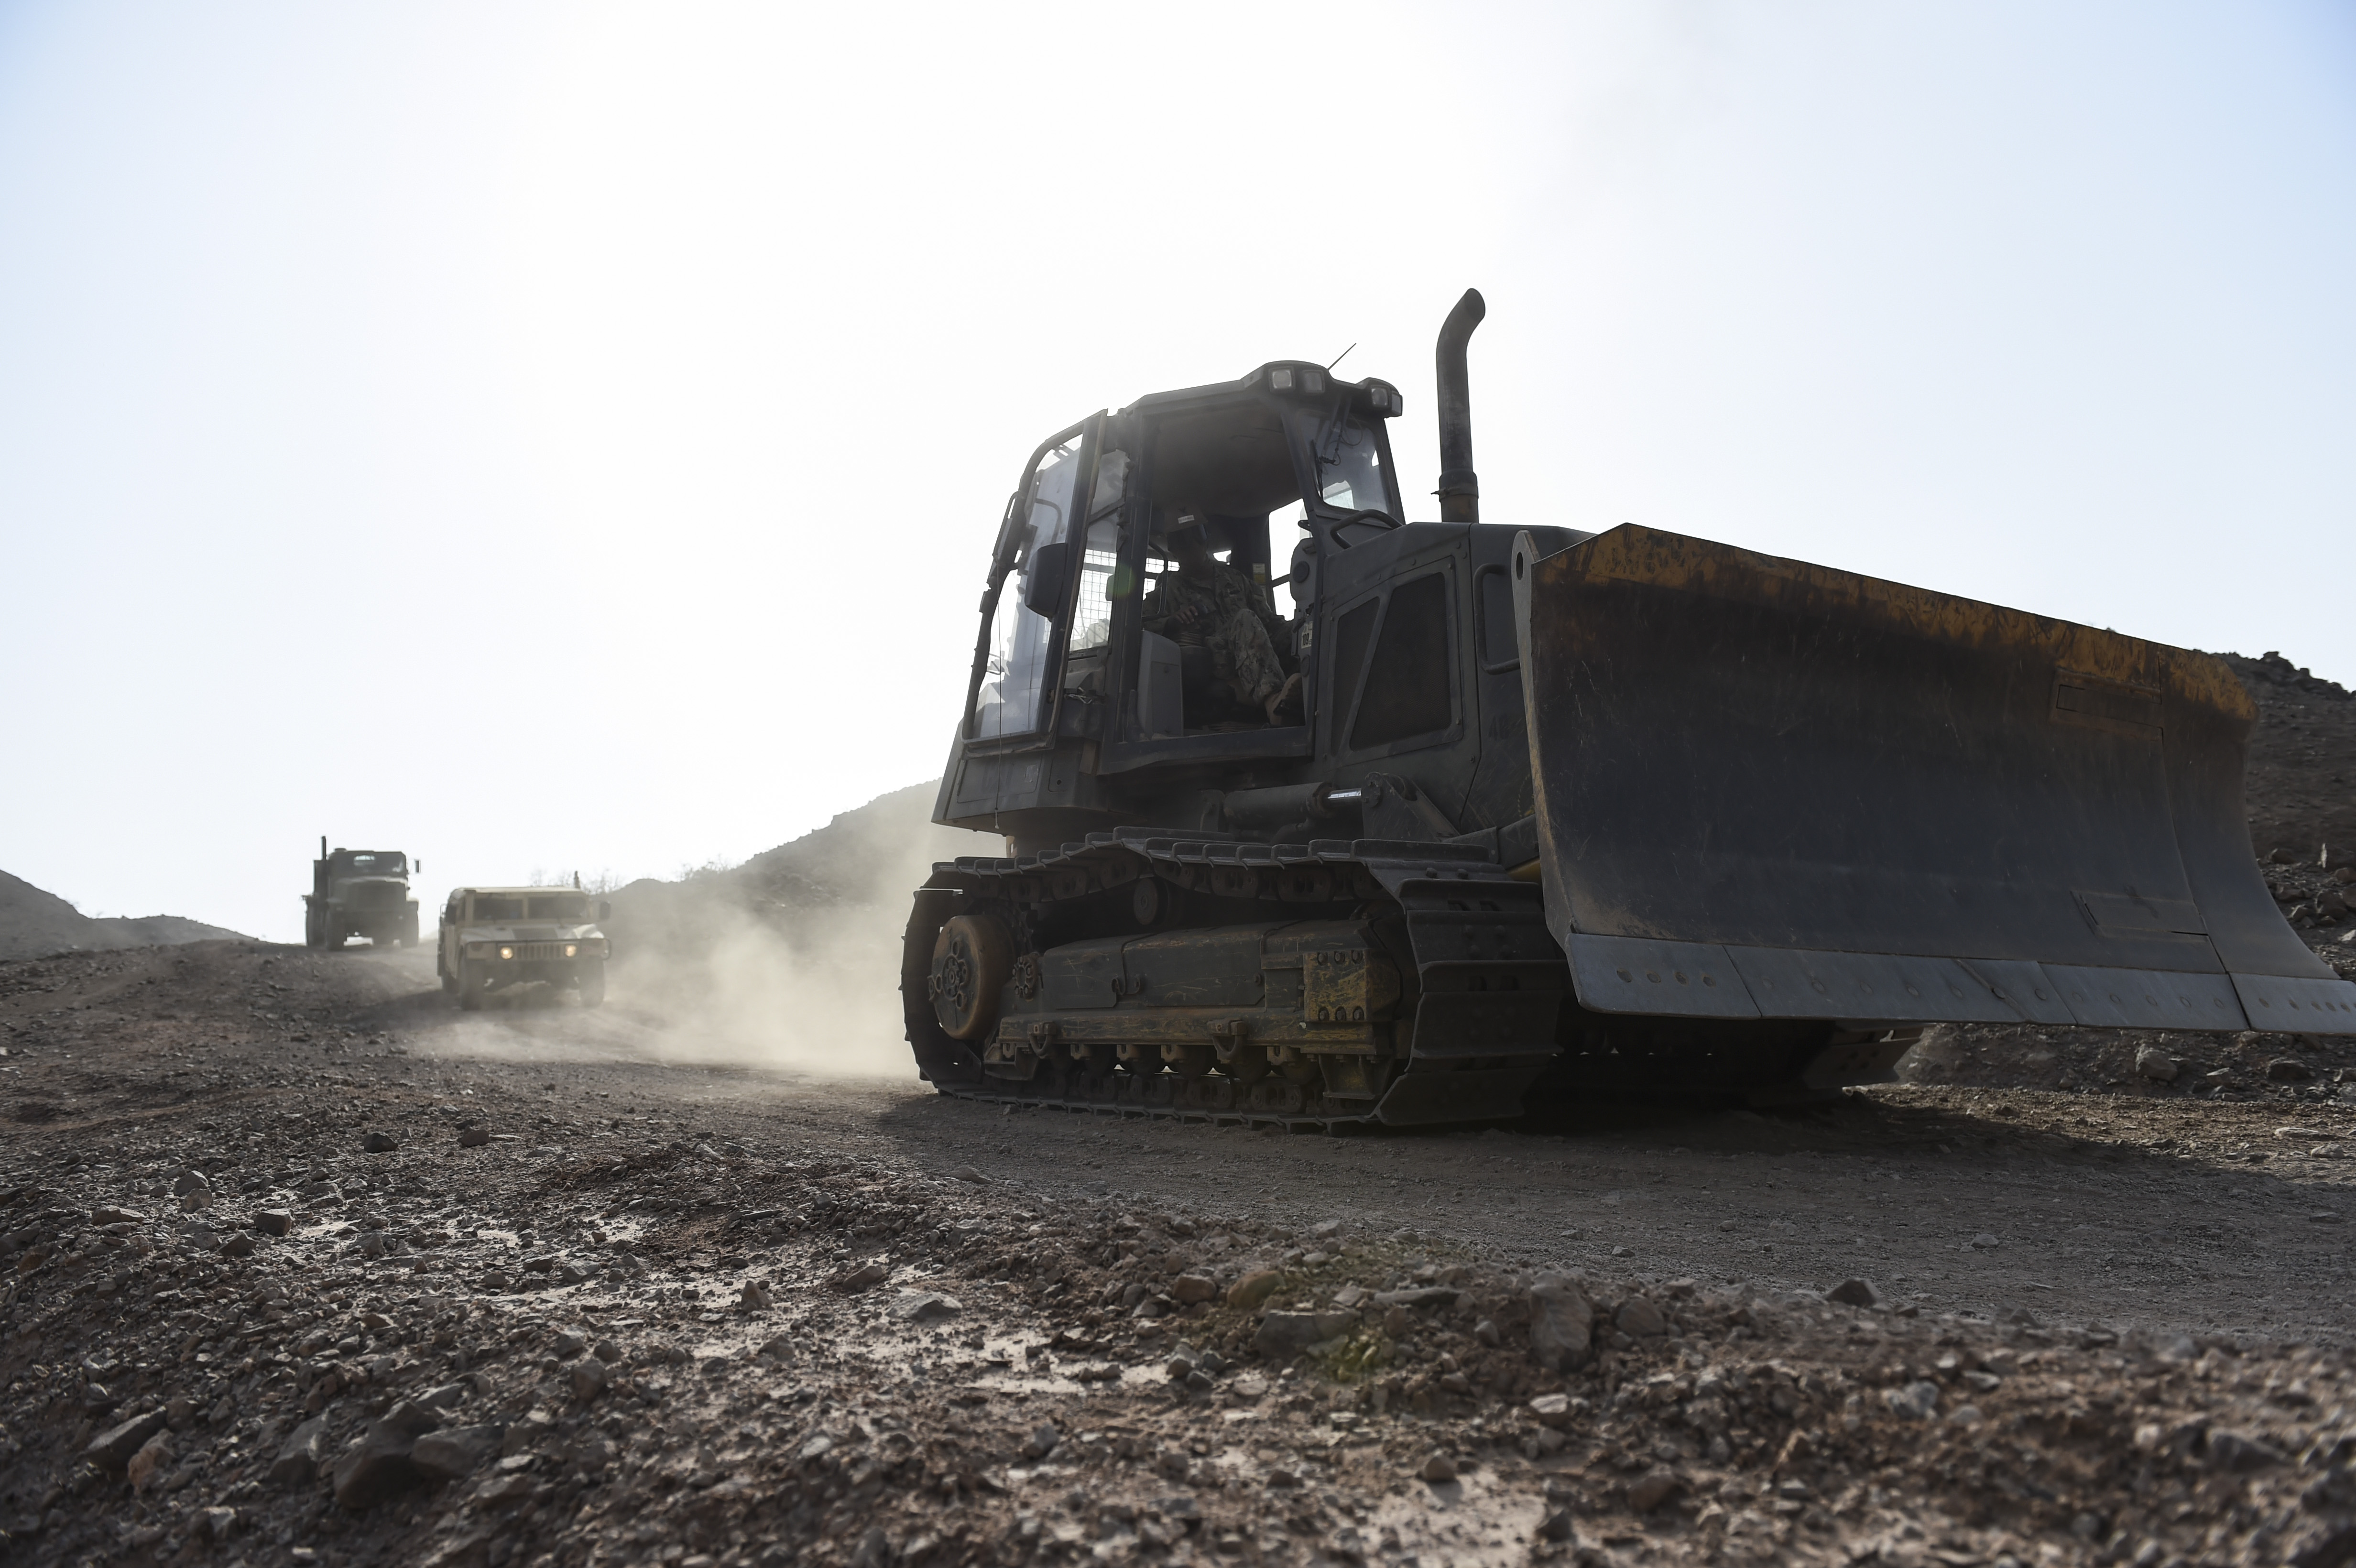 A convoy of construction vehicles navigate through a range near Arta, Djibouti, July 28, 2017. Members of the U.S. Naval Mobile Construction Battalion One completed a project to improve and develop the roadways. NMCB One supports Combined Joint Task Force-Horn of Africa through the completion various construction projects throughout East Africa that aid promoting stability in the region. (U.S. Air Force photo by Staff Sgt. Eboni Prince)